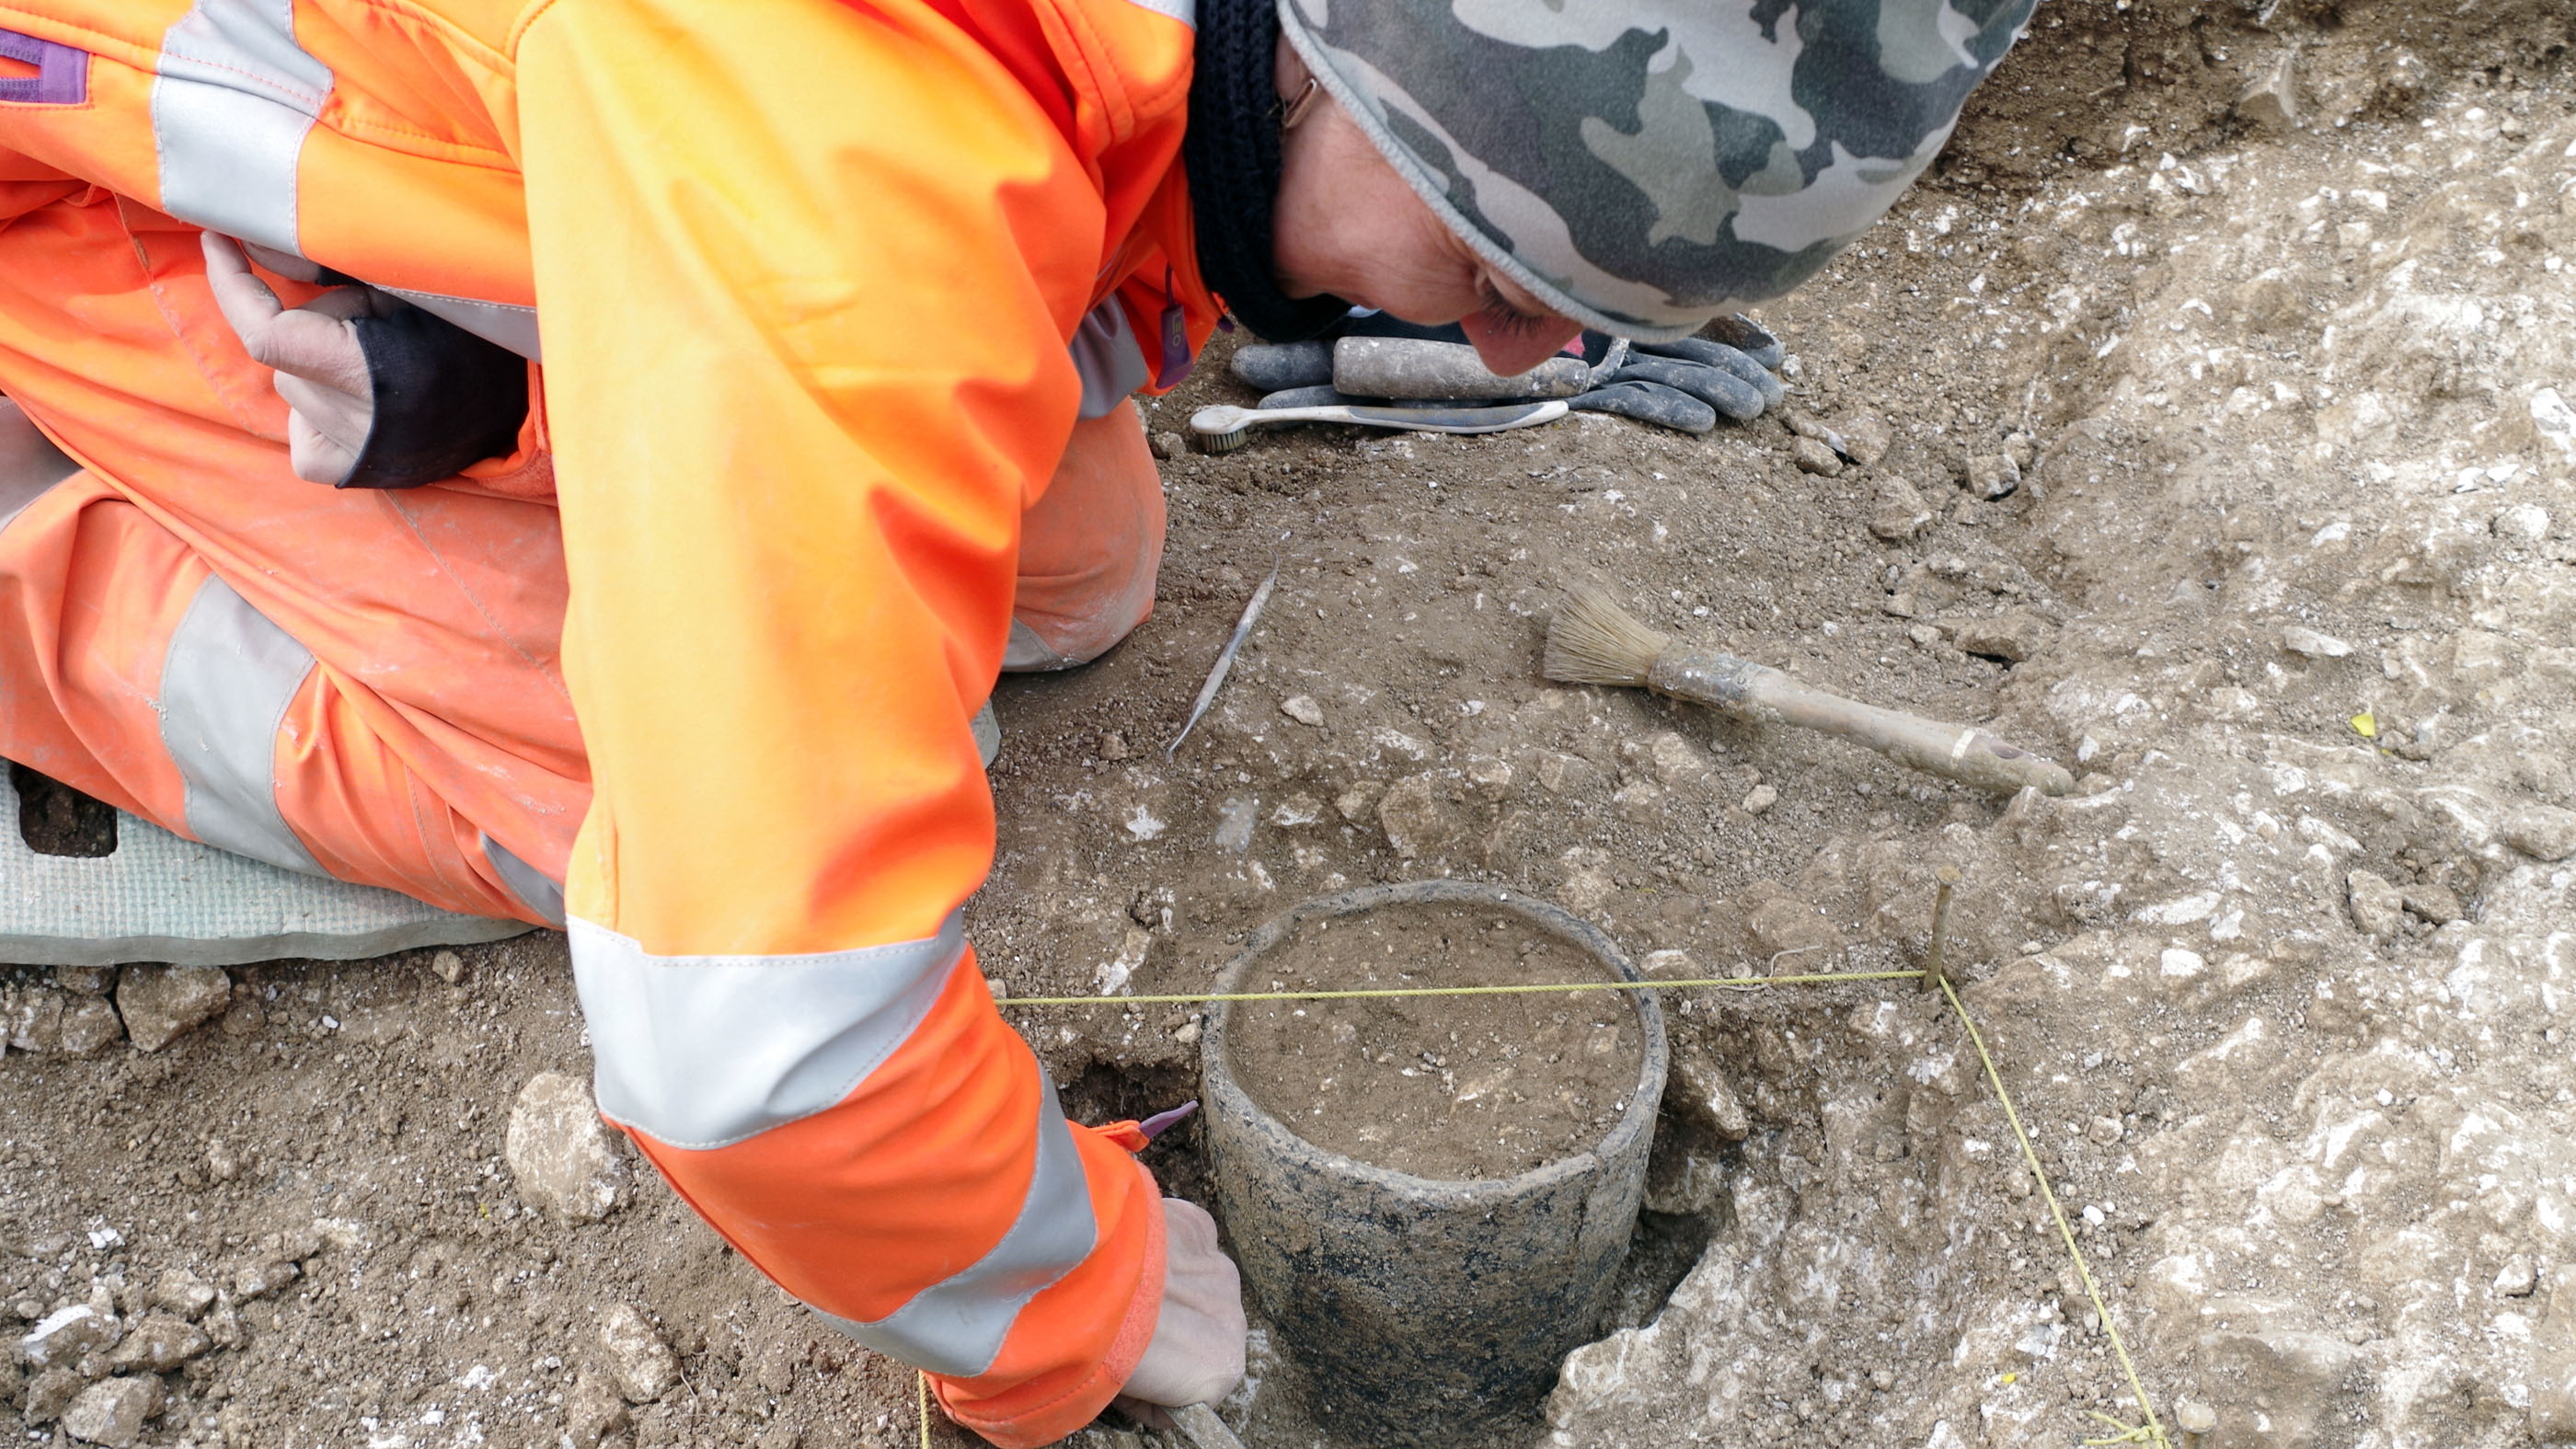 An archaeologist with Wessex Archaeology excavates a Bronze Age pot discovered during preliminary work on the site of the proposed tunnel near Stonehenge.